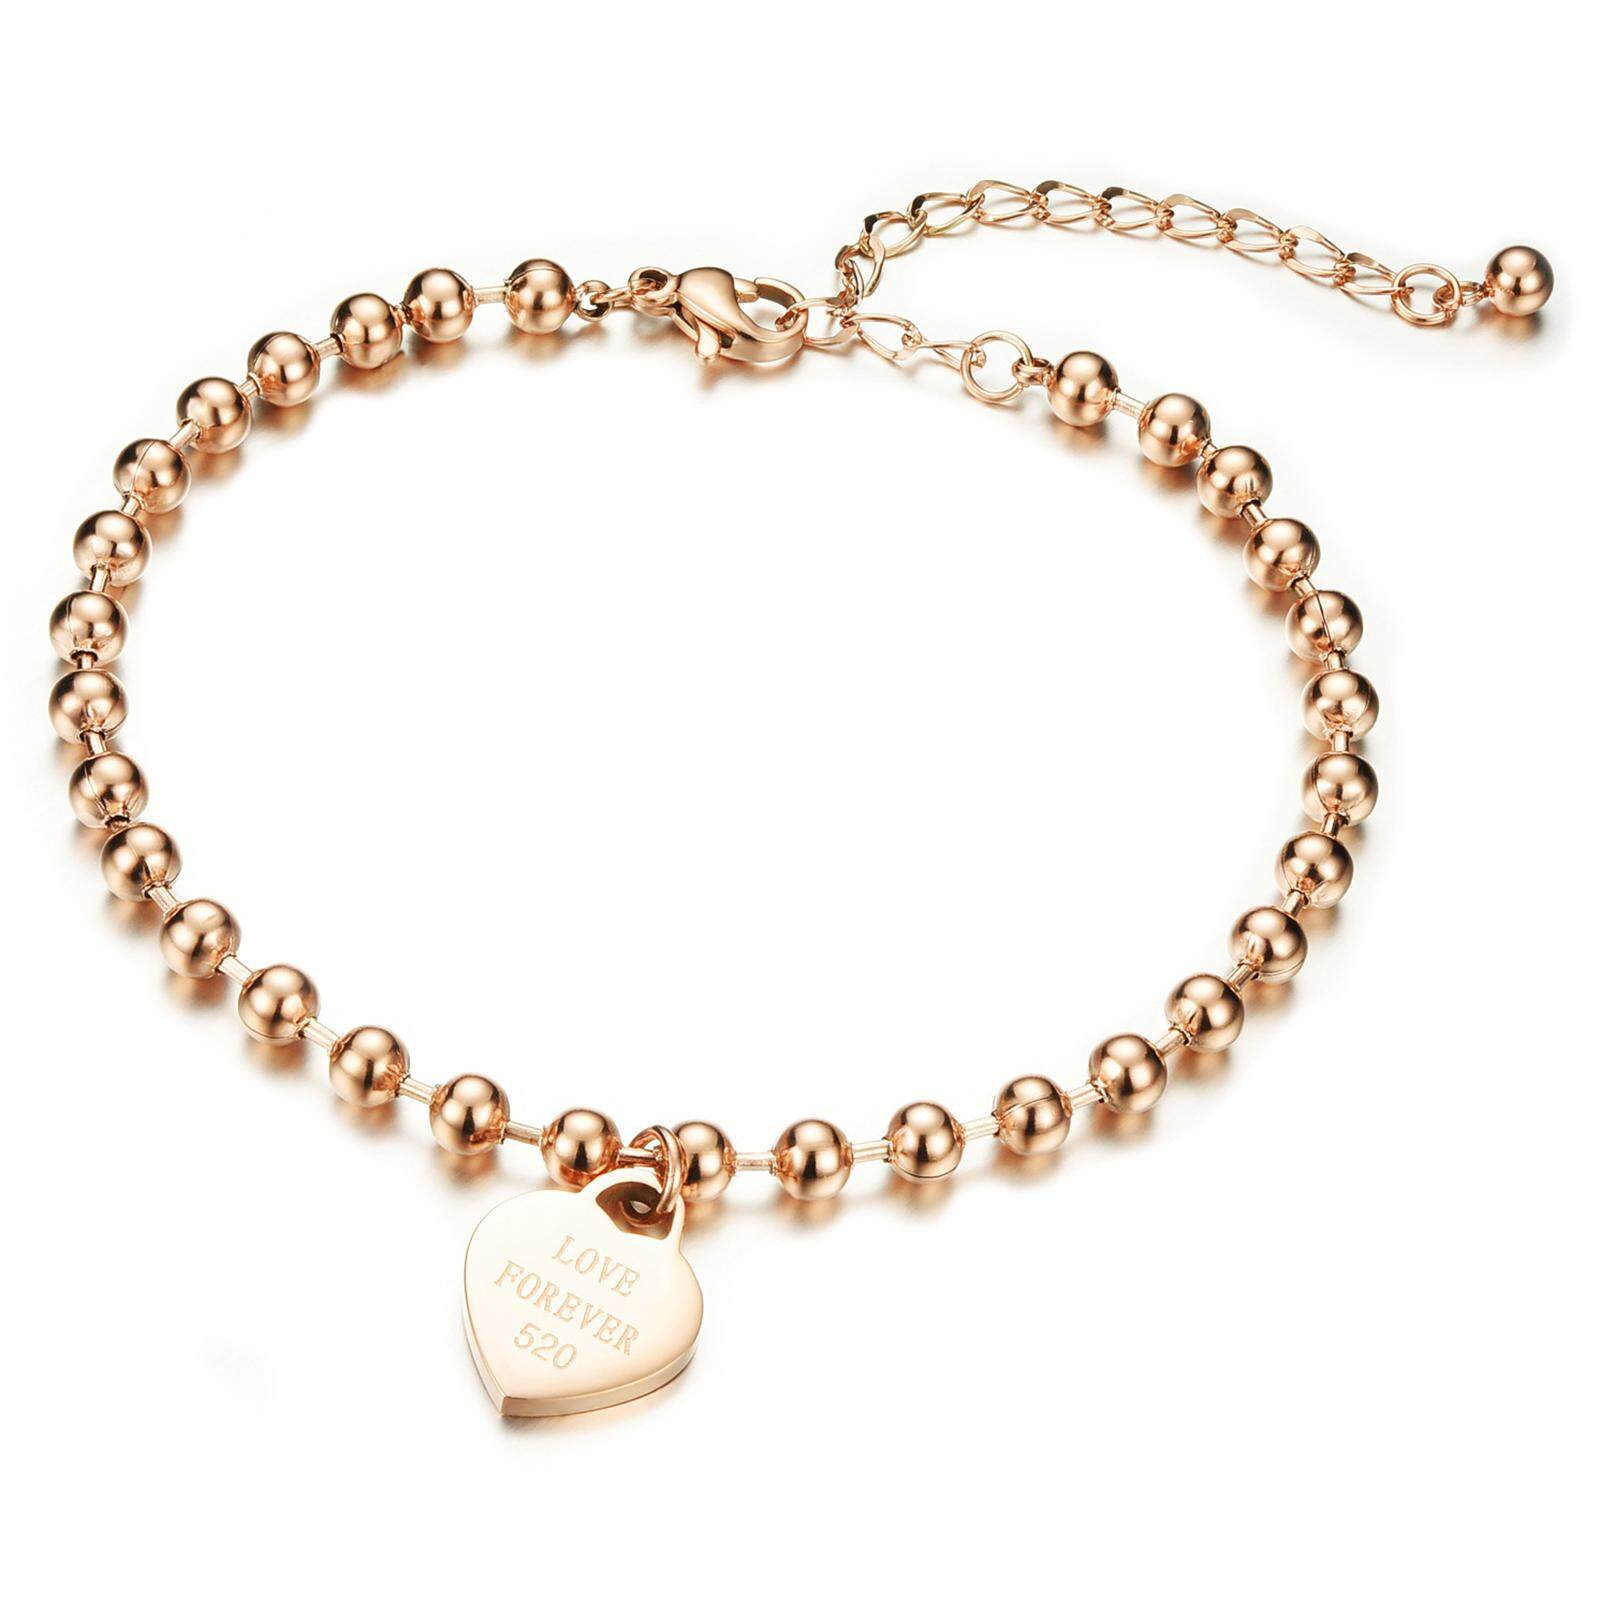 29ff14f7a07 Richapex Rose Gold Plated Stainless Steel Ankle Bracelet LOVE FOREVER 520  Anklet Lucky Beads Foot Chain